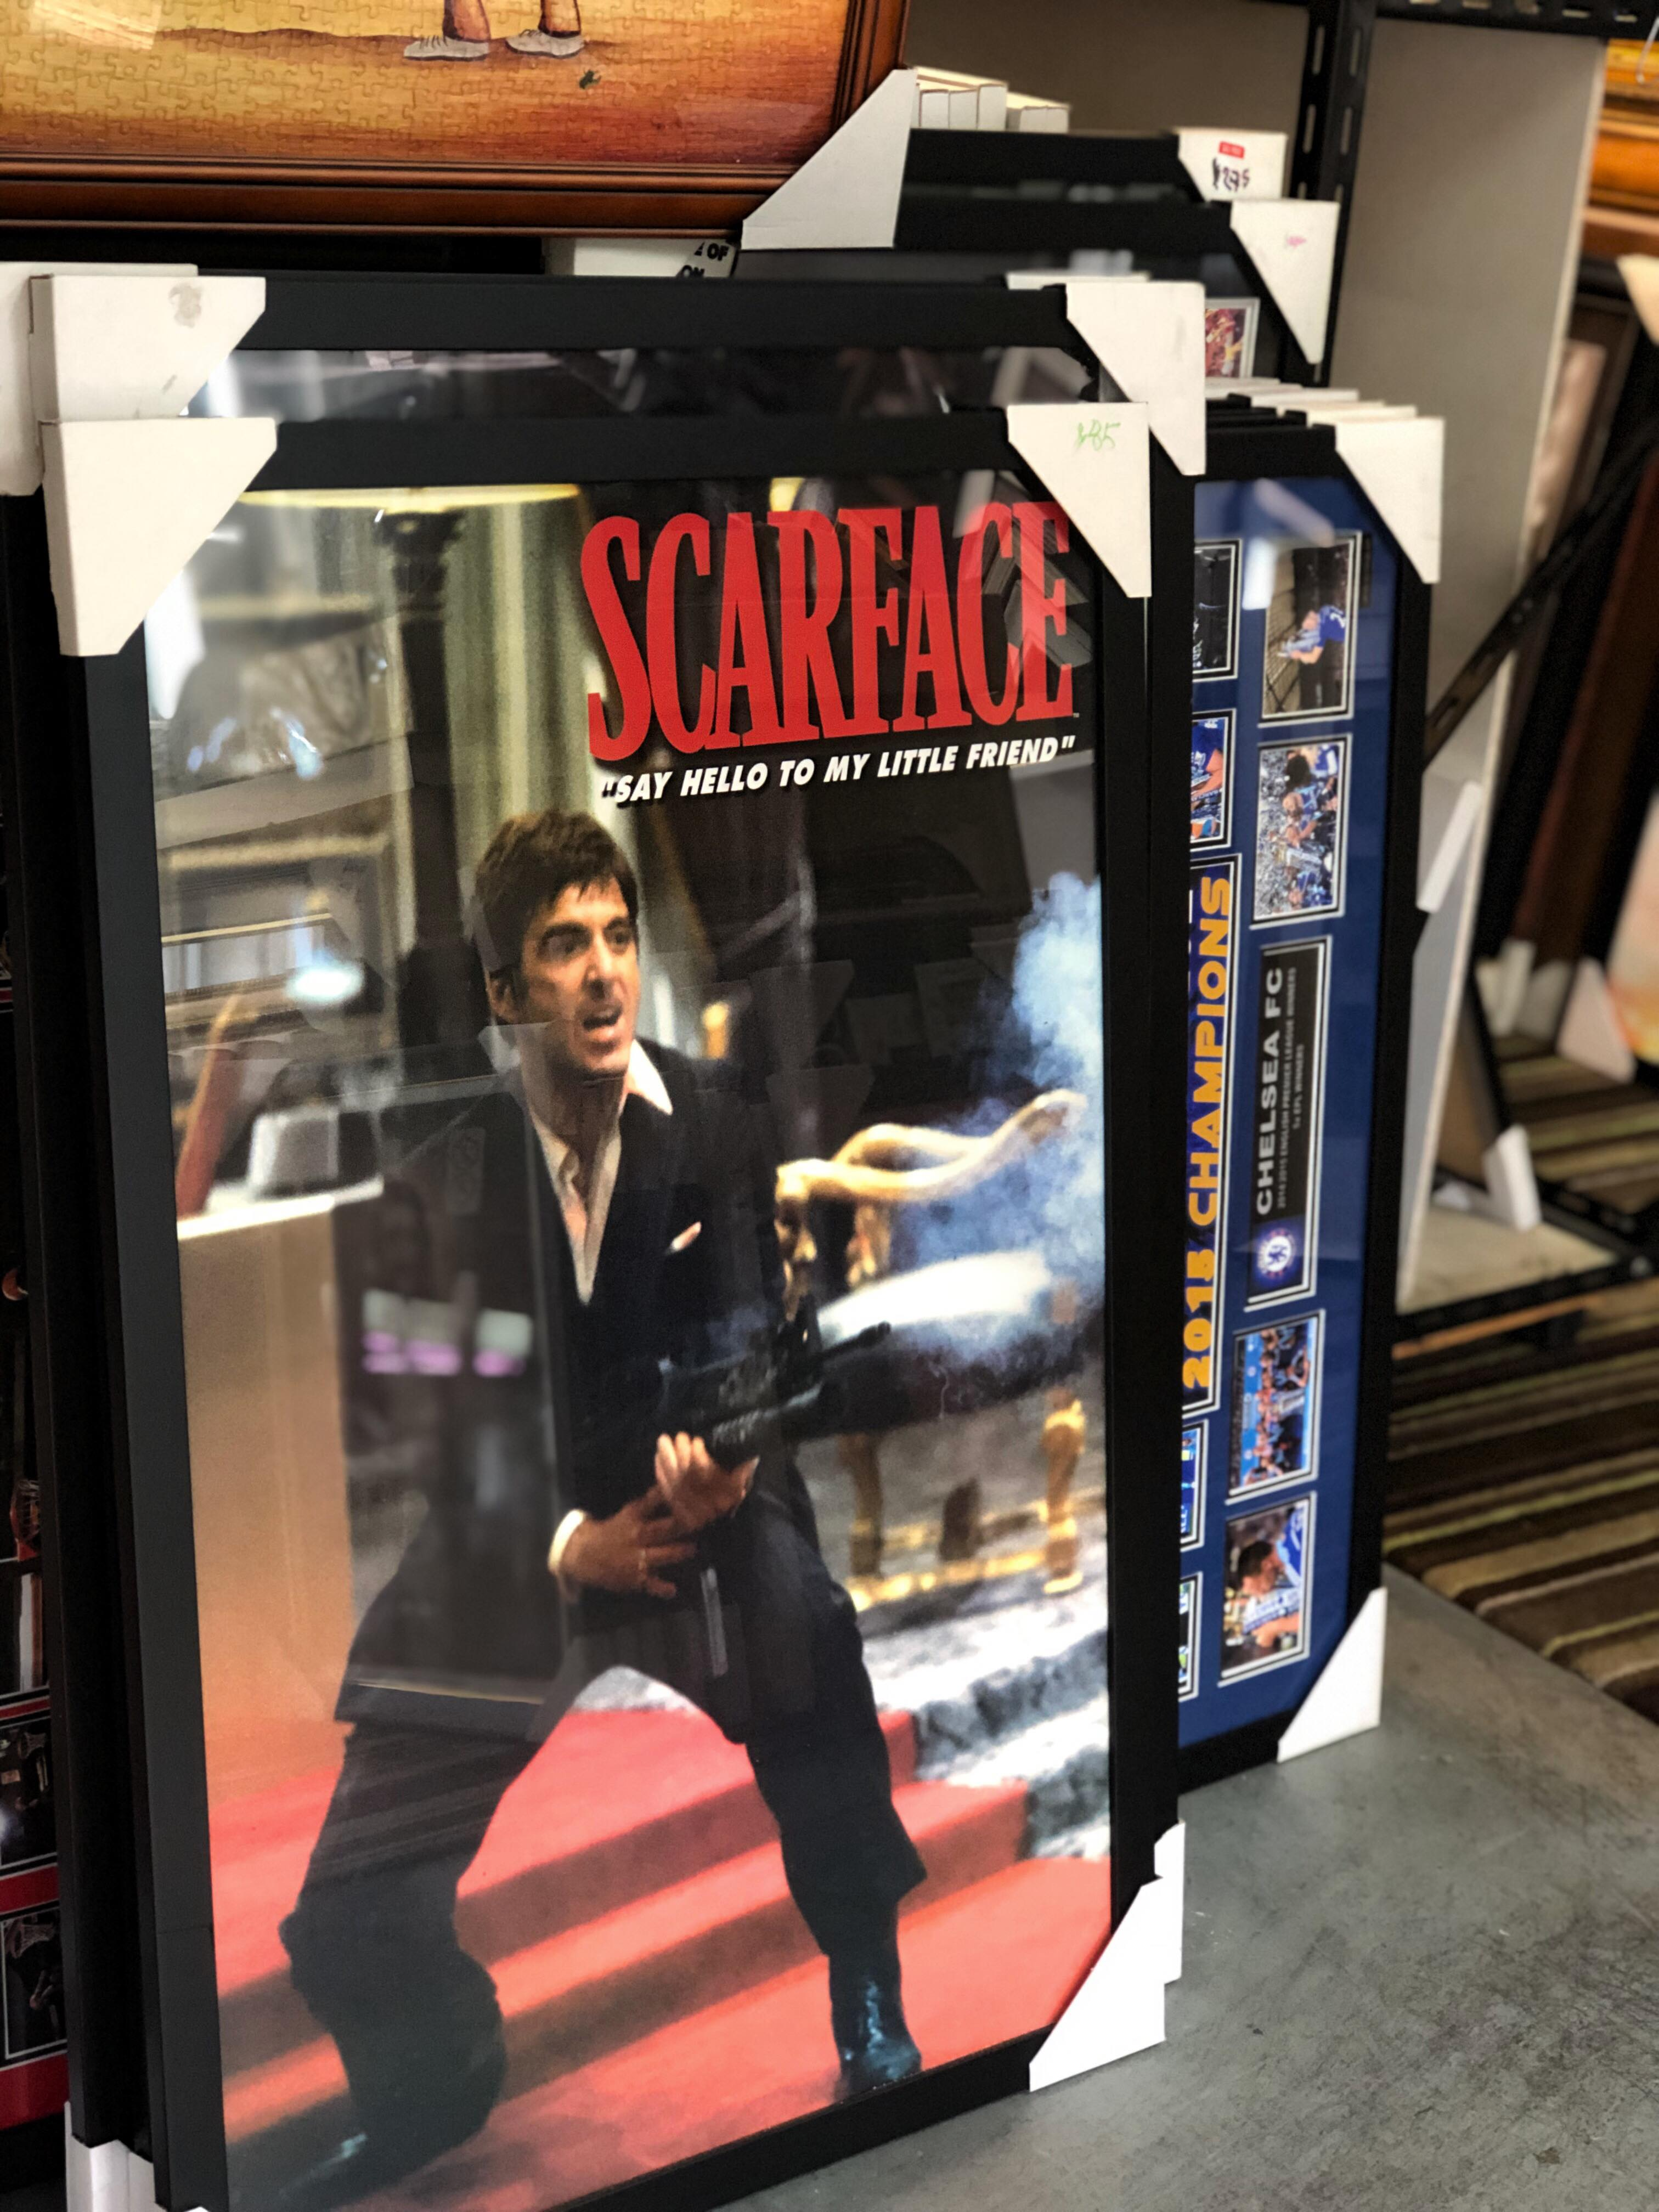 scarface poster frame from picture